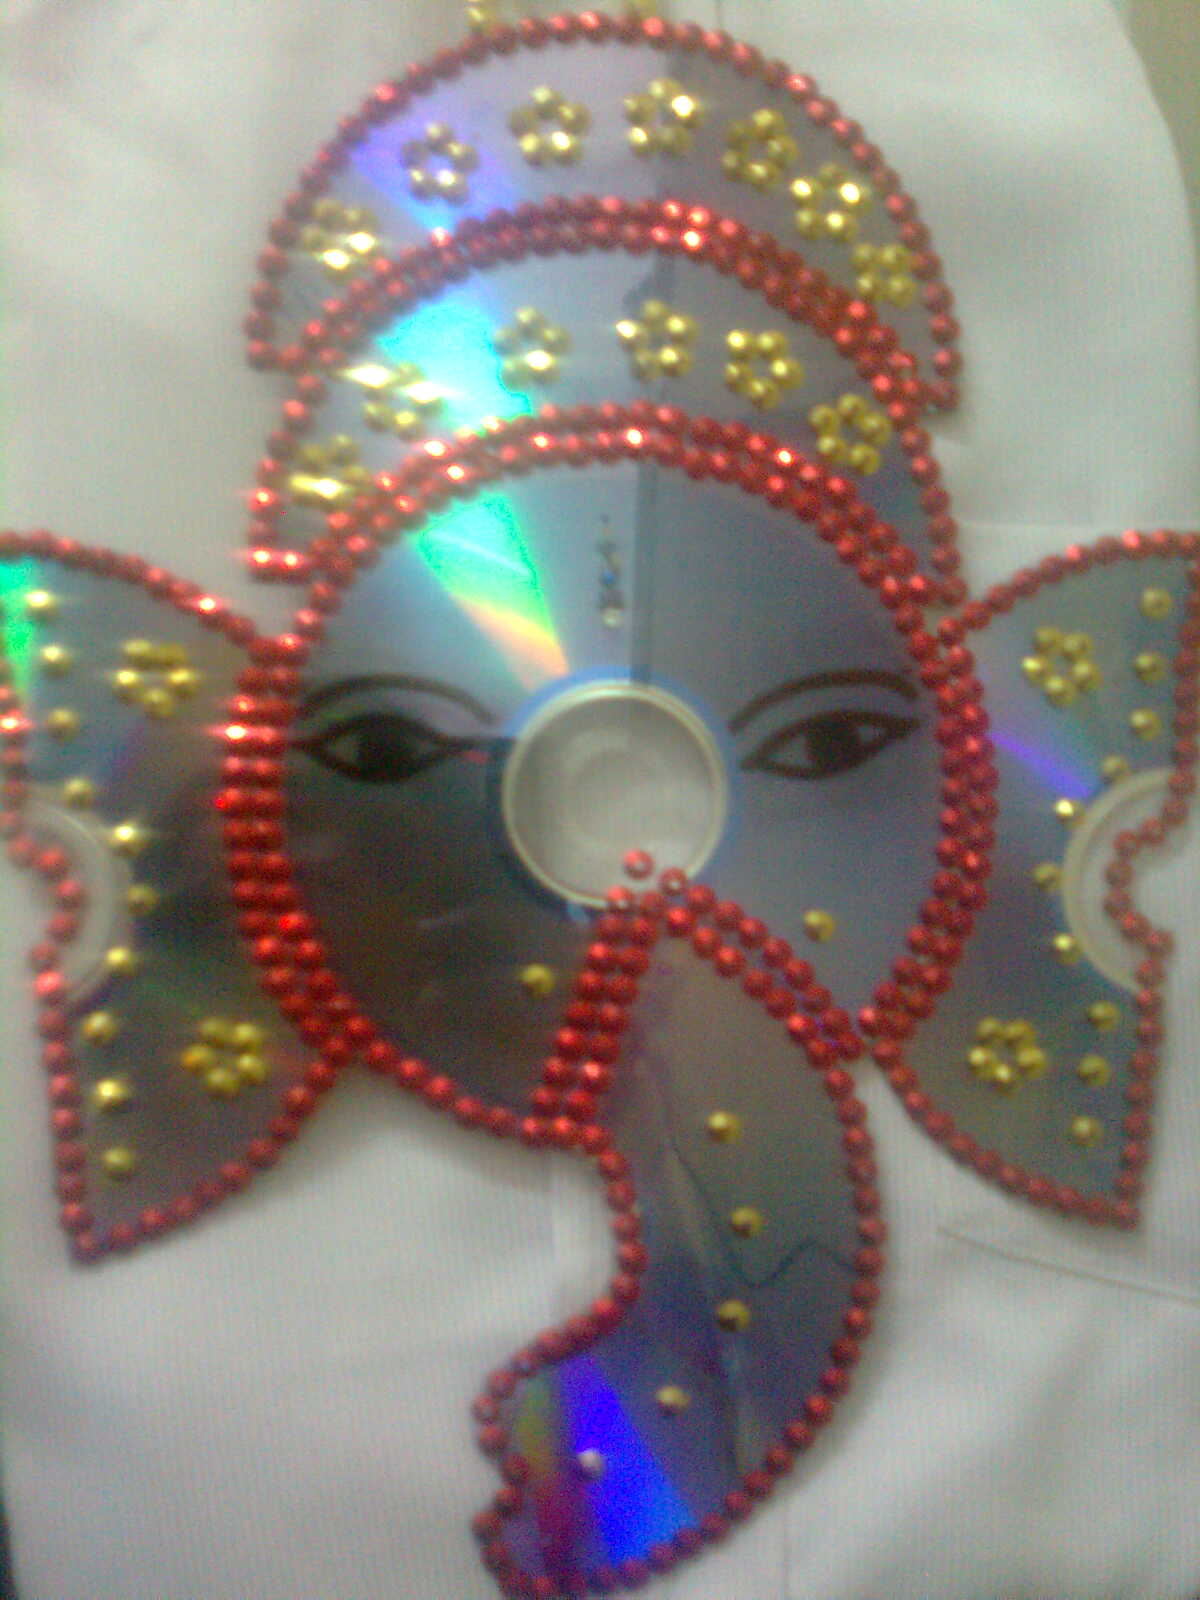 Maha arts crafts cd ganesh vinayagar for Craftwork from waste